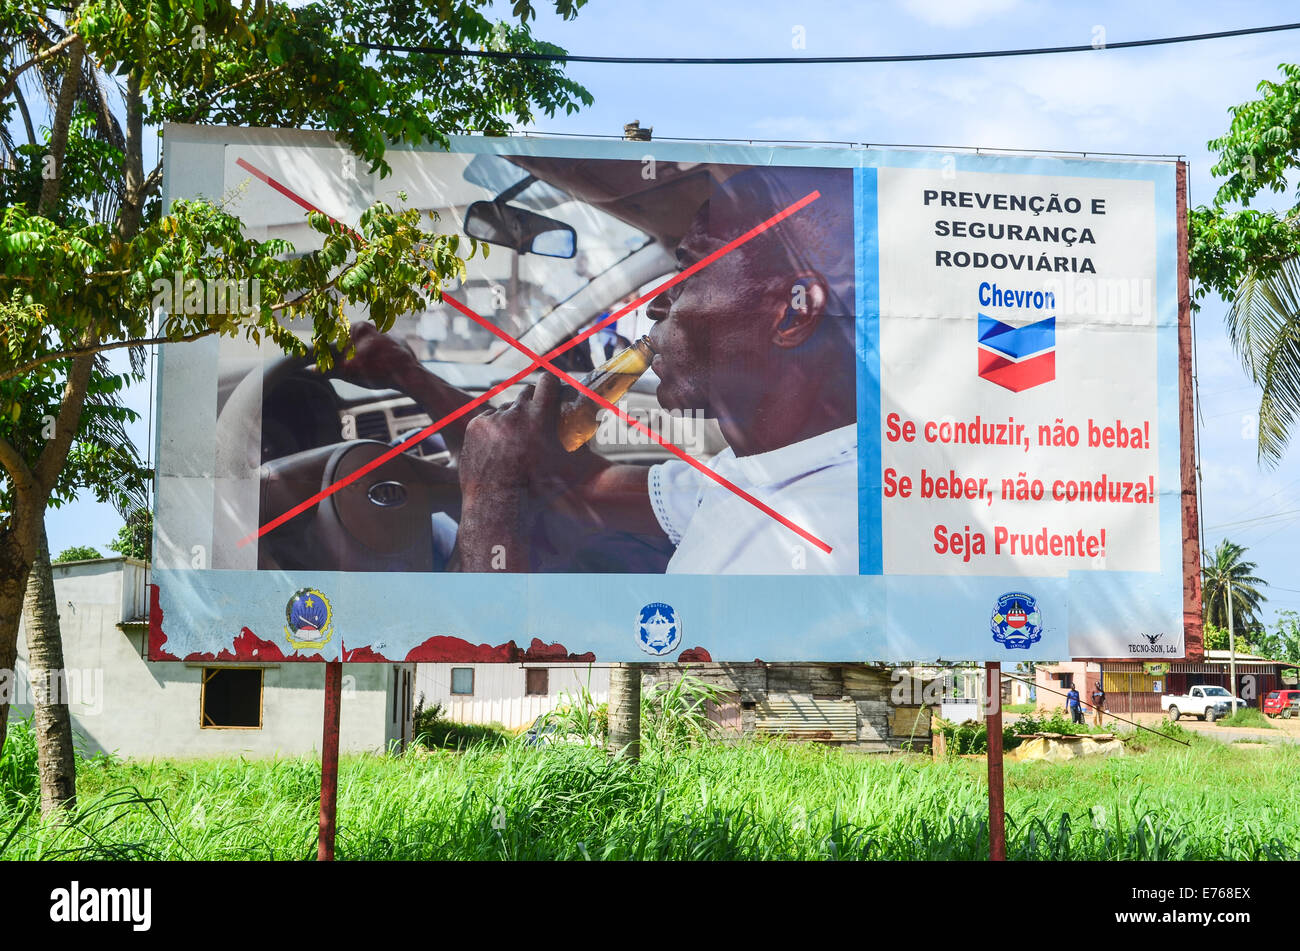 A prevention road sign by the American oil company Chevron warning against drunk driving in Angola, Africa - Stock Image